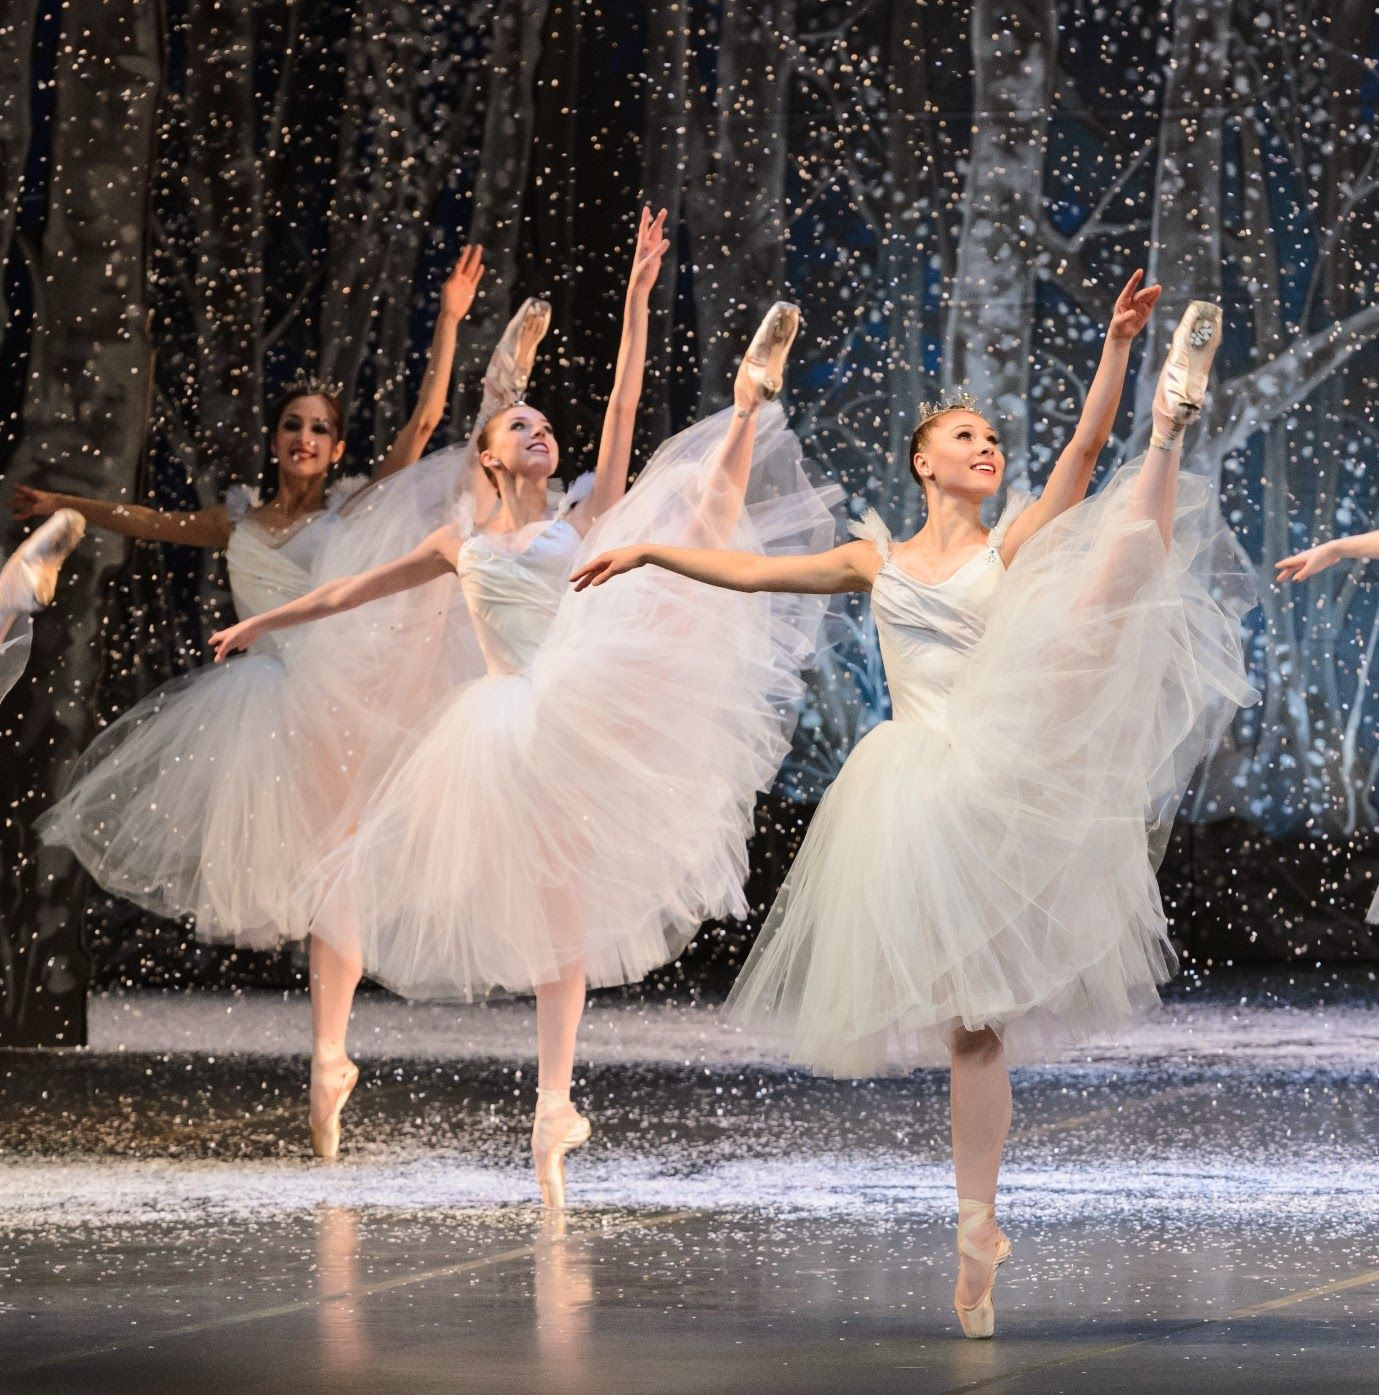 The Waltz of the Snowflakes from The Nutcracker